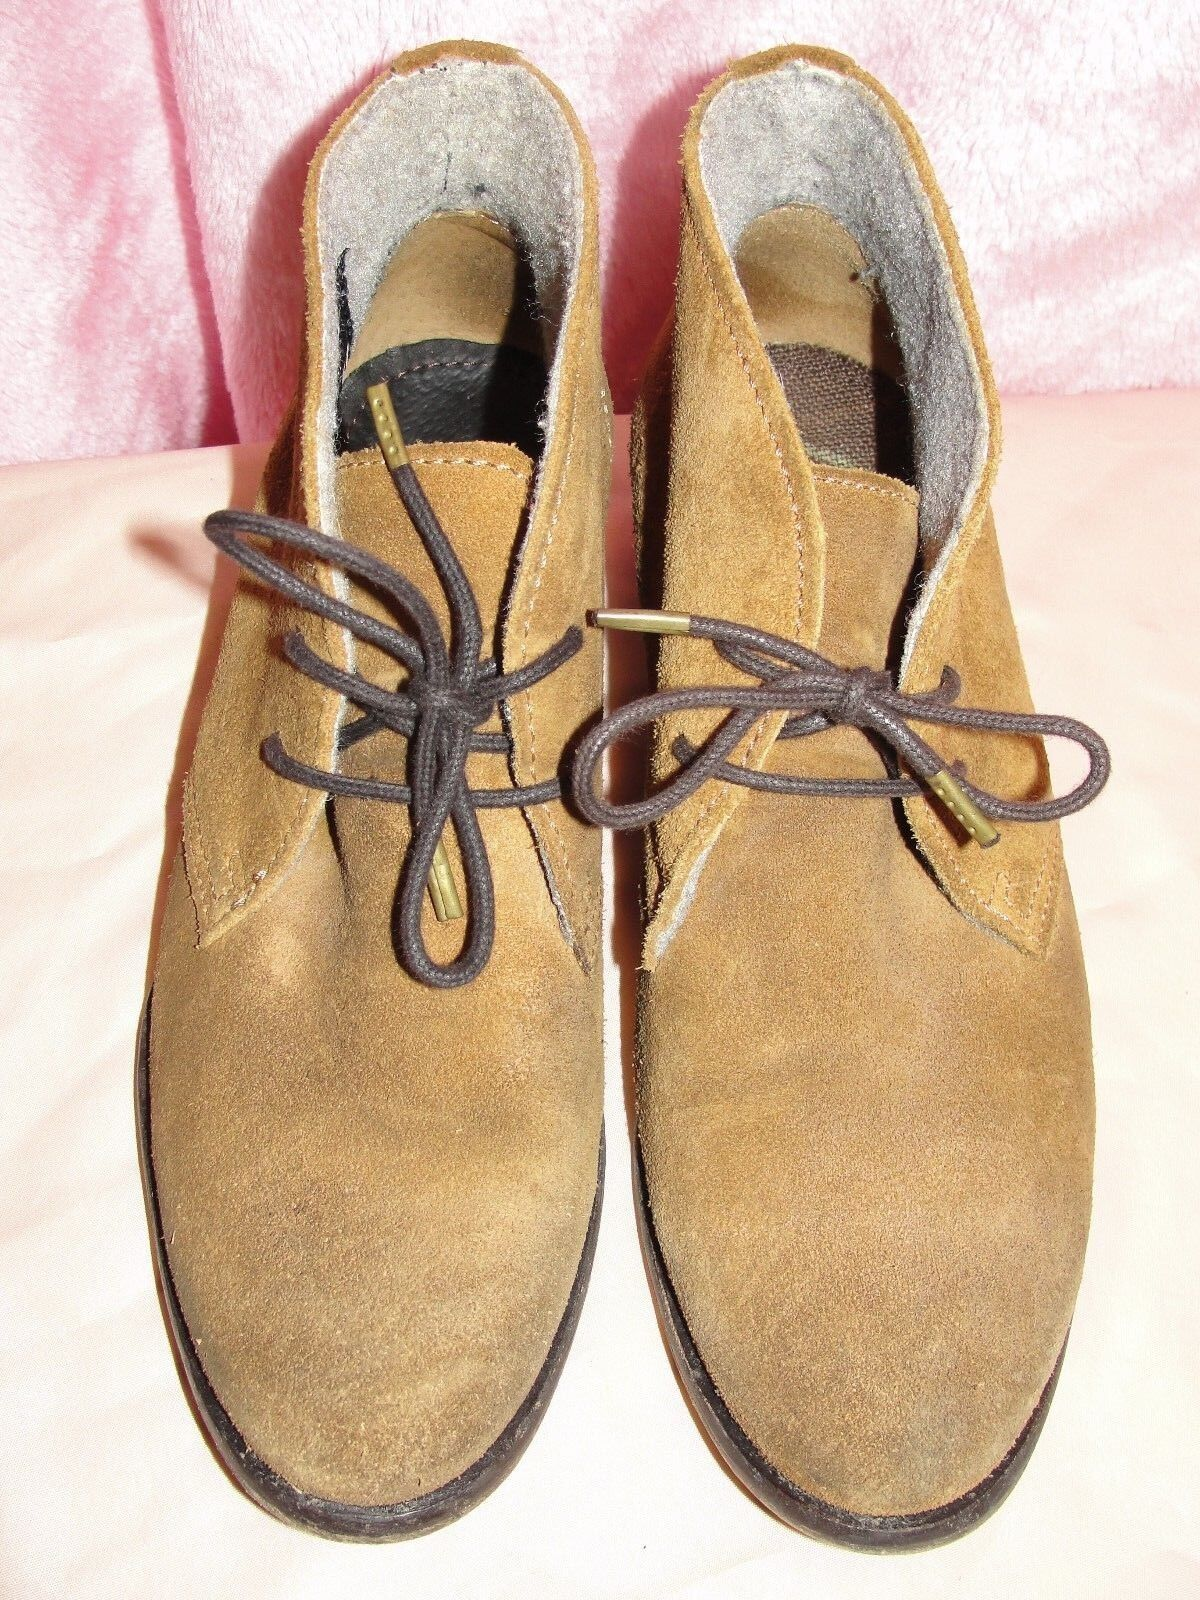 Superdry Suede Leather boots - size eur 37